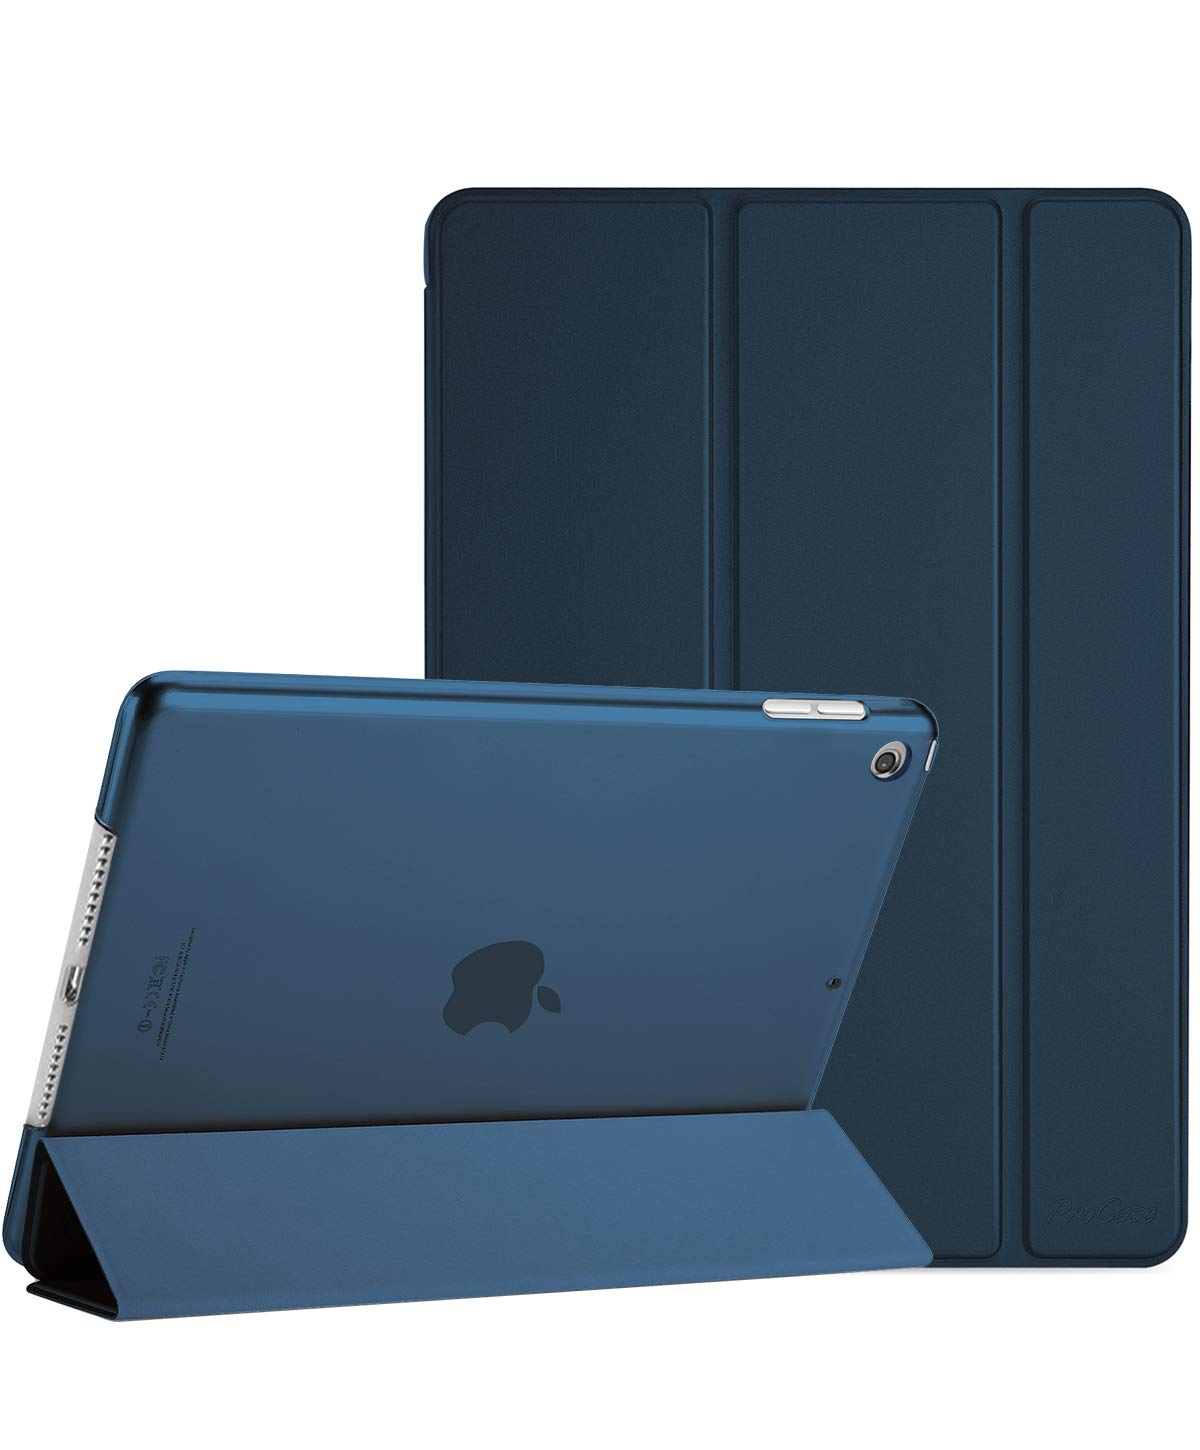 ProCase iPad Mini 5 Case 5th Generation iPad Mini 2019, Slim Lightweight Stand Protective Case Translucent Frosted Shell Smart Cover for 2019 Apple iPad Mini 5 7.9 Inch –Navy